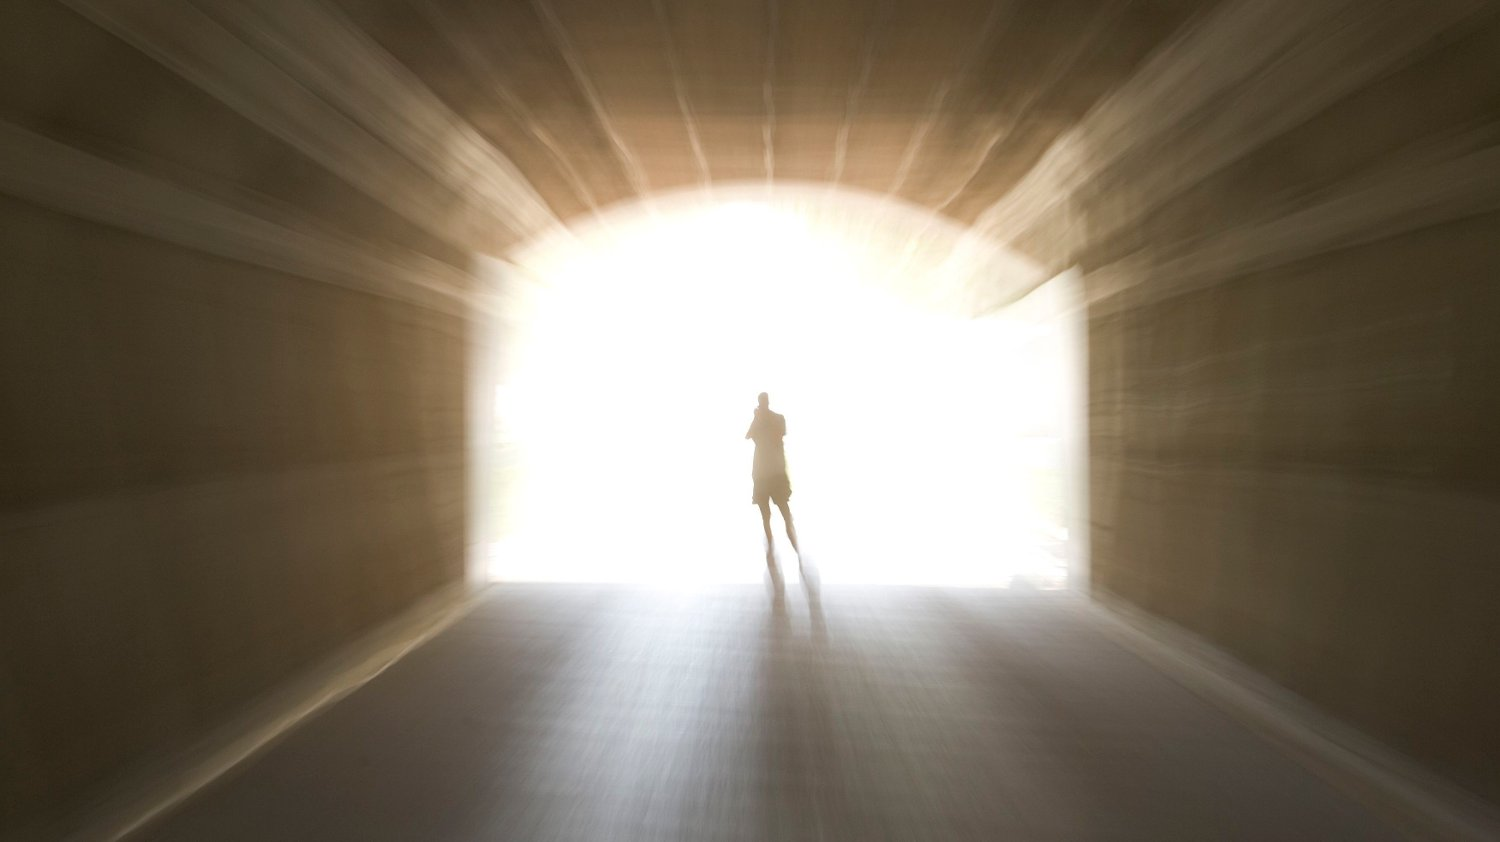 Walk to the light surreal tunnel of bright light with a shadowy figure at the end